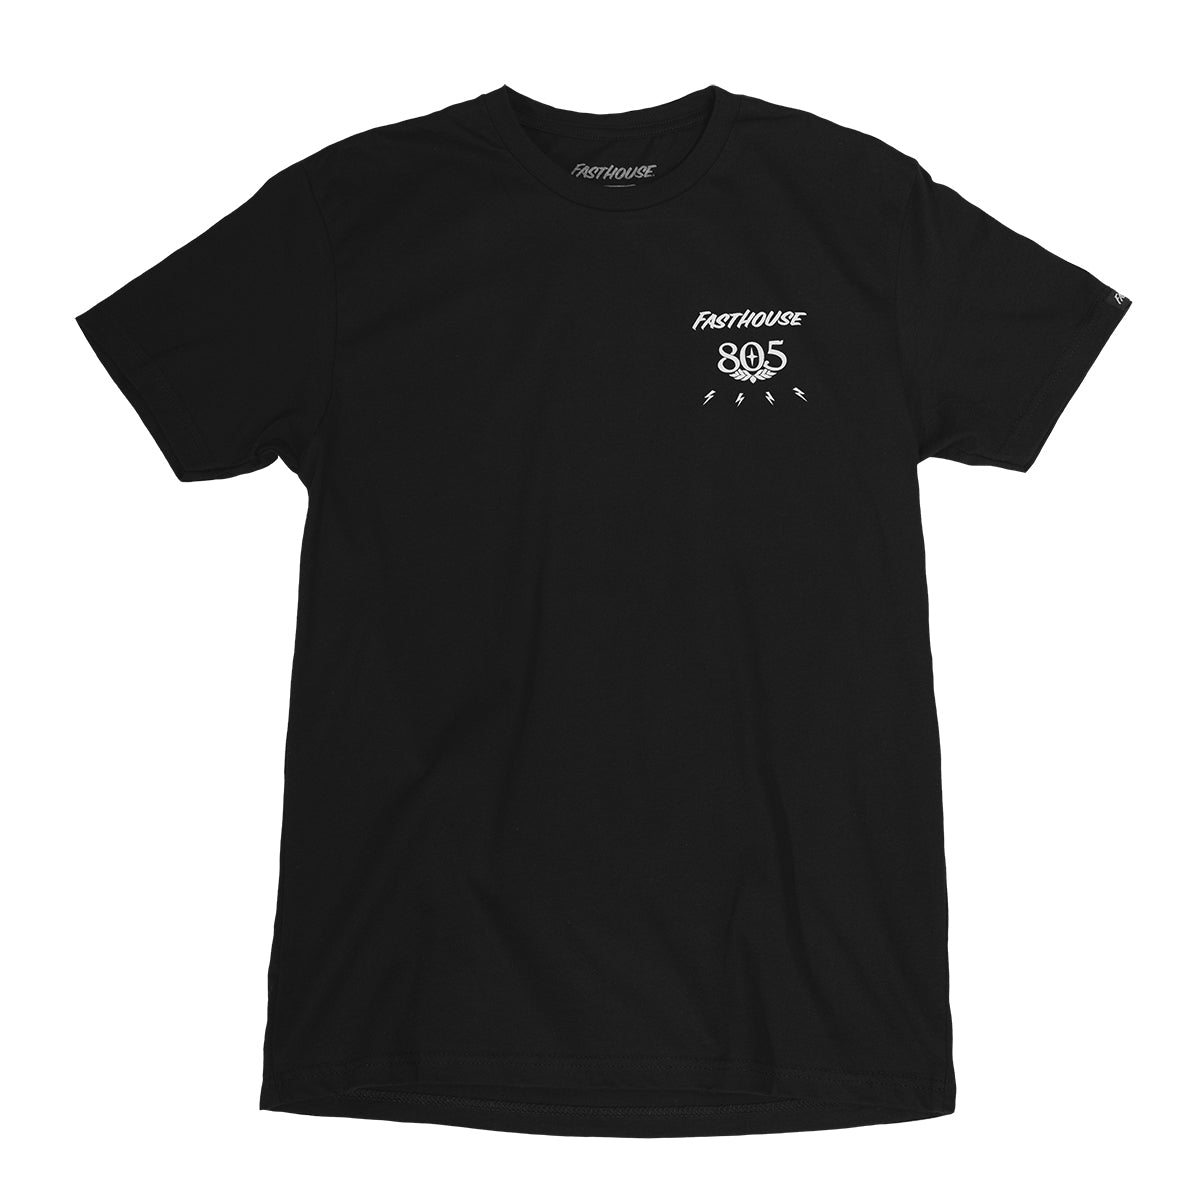 805 Beer Run Tee - Black